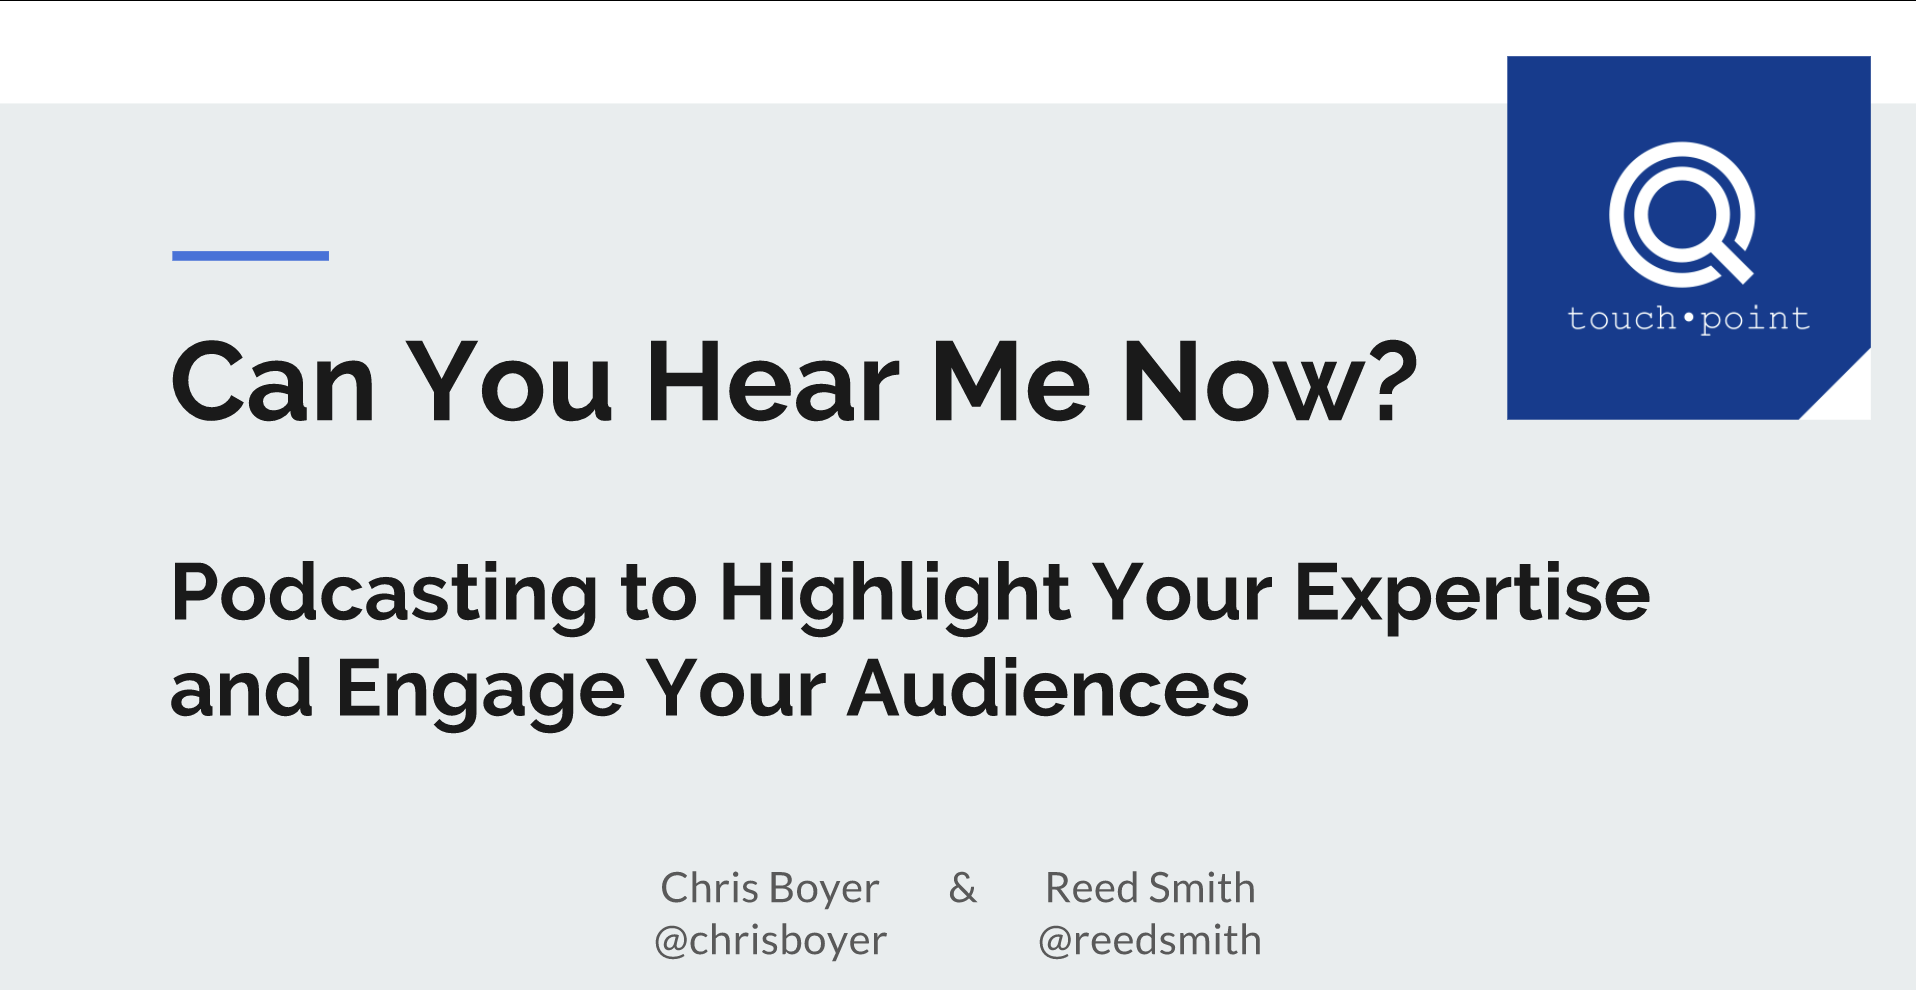 Can You Hear Me Now? Podcasting to Highlight Your Expertise and Engage Your Audiences